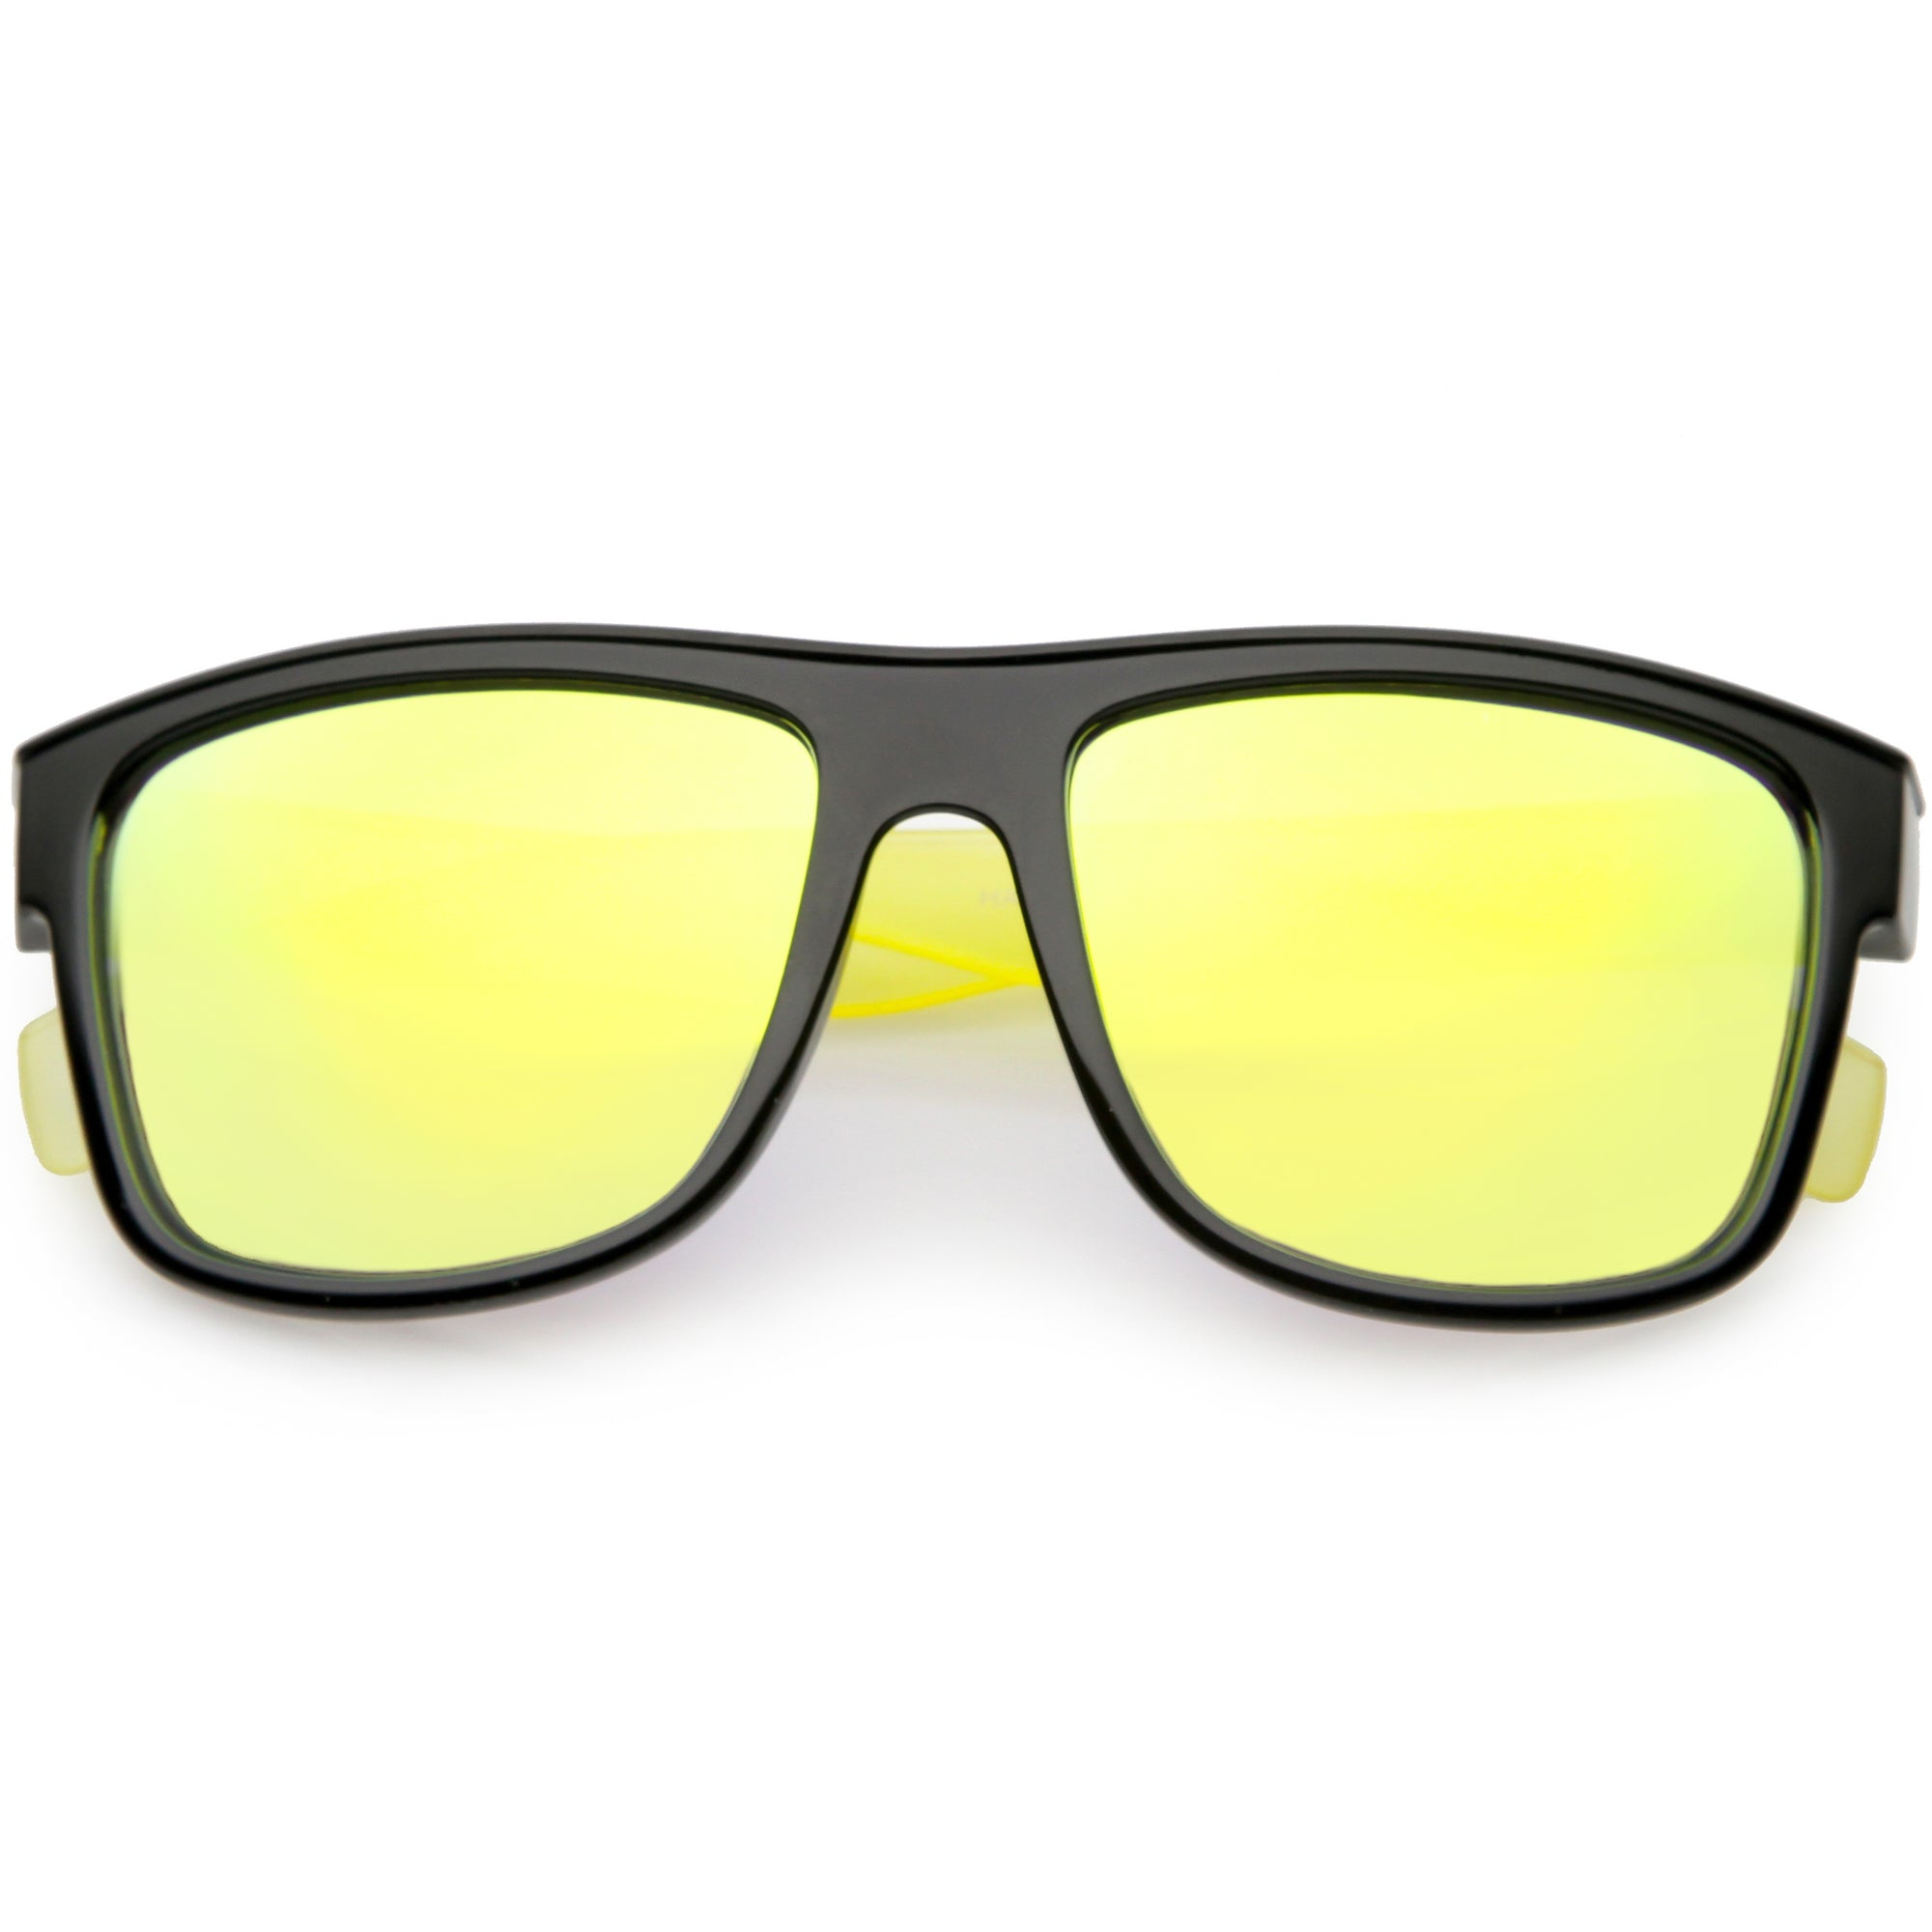 Radical Retro Skater Horned Rim Flash Mirrored Sunglasses C787